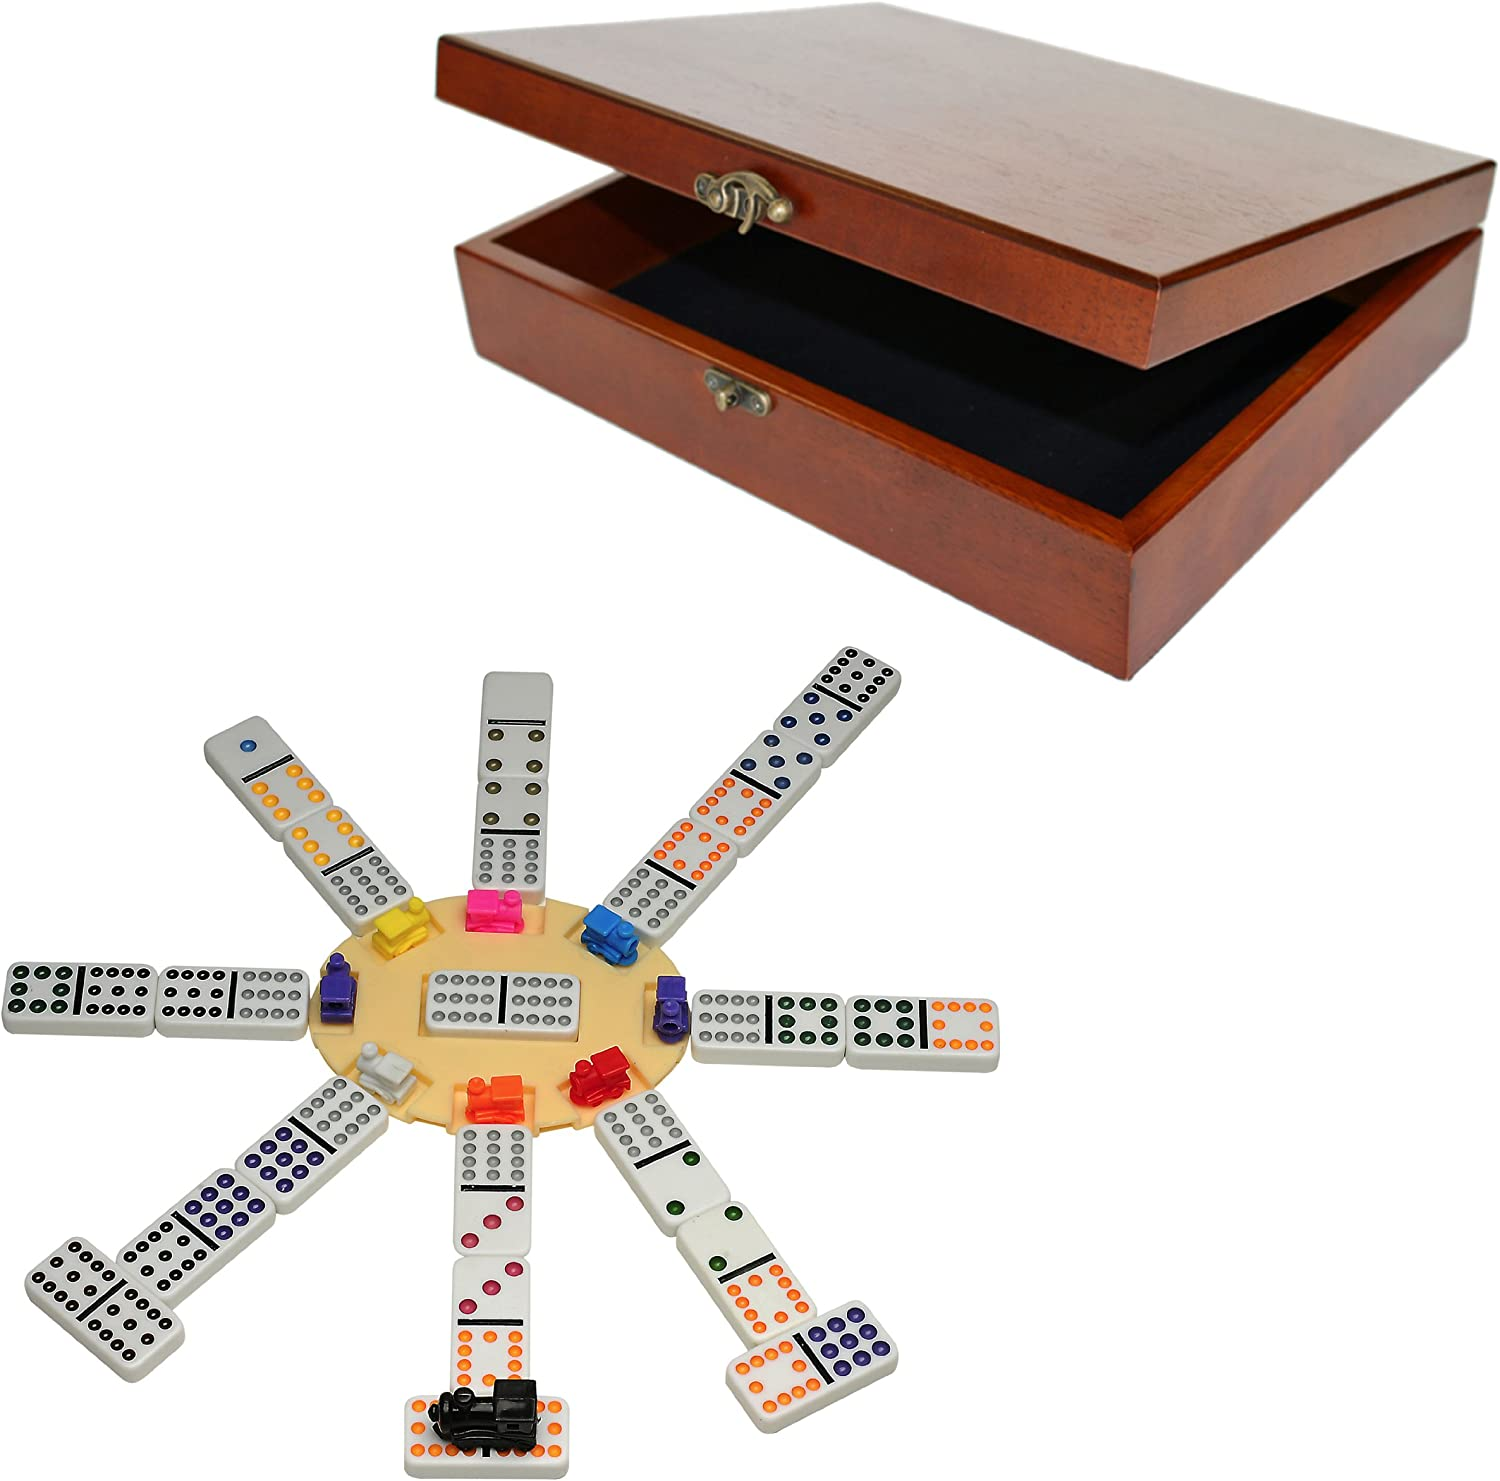 WE Under blast sales Games Deluxe Mexican Dominoes Box Wooden Memphis Mall in Old-Style